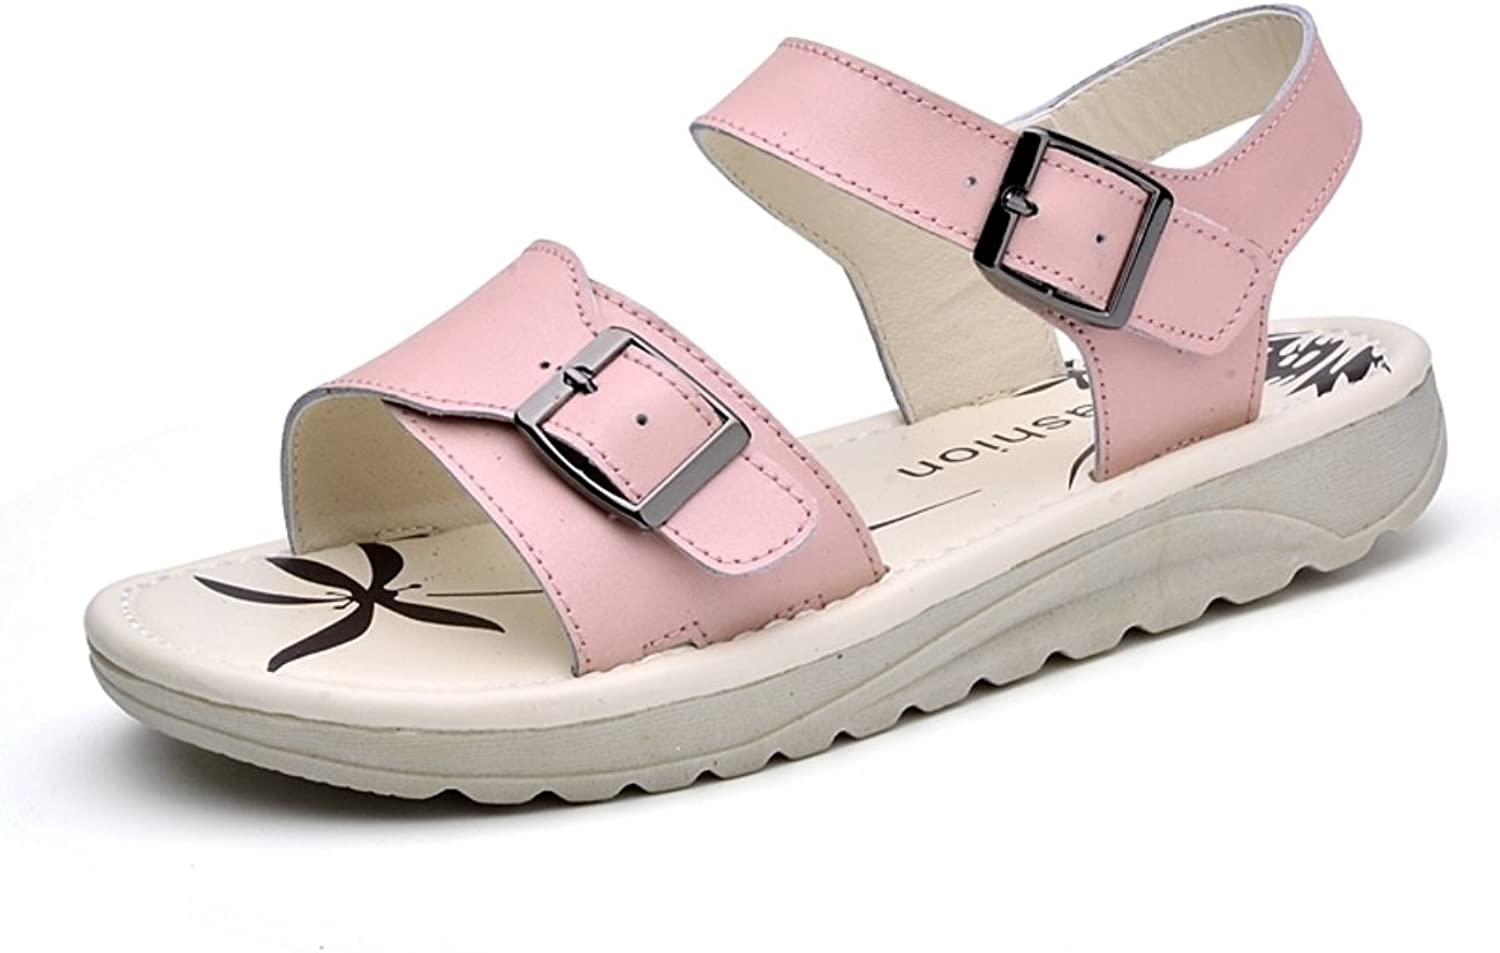 MET RXL Summer,Lady,Flat Sandals Leisure Beach-shoes